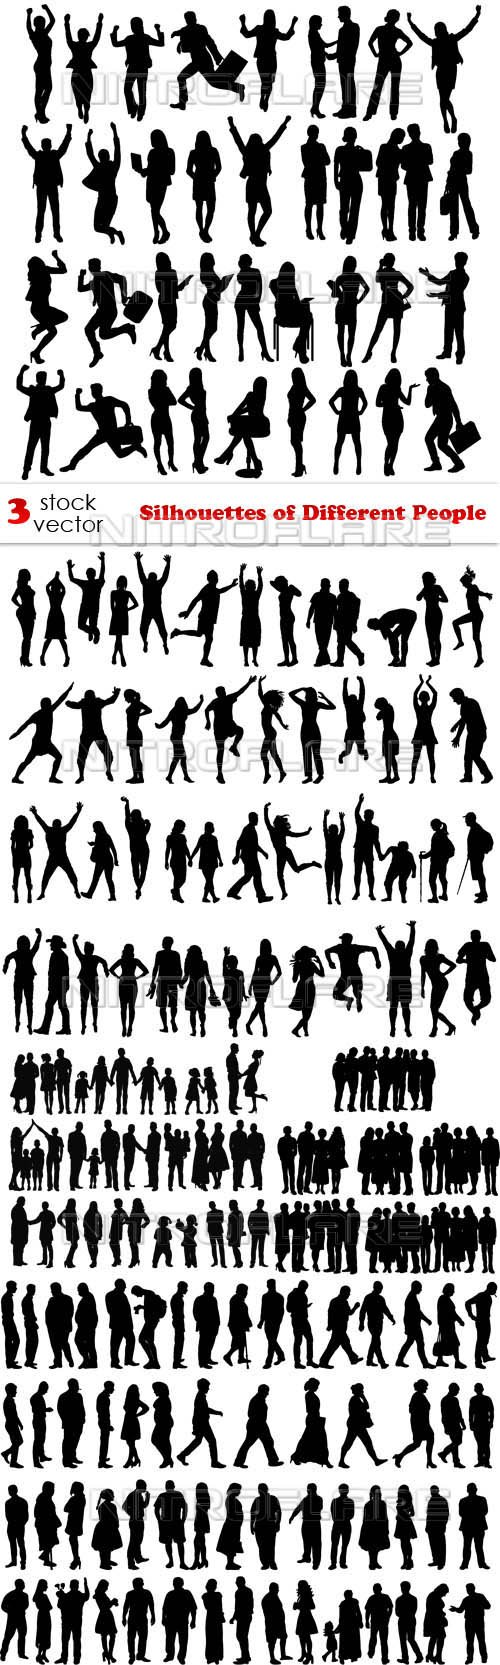 Vectors - Silhouettes of Different People